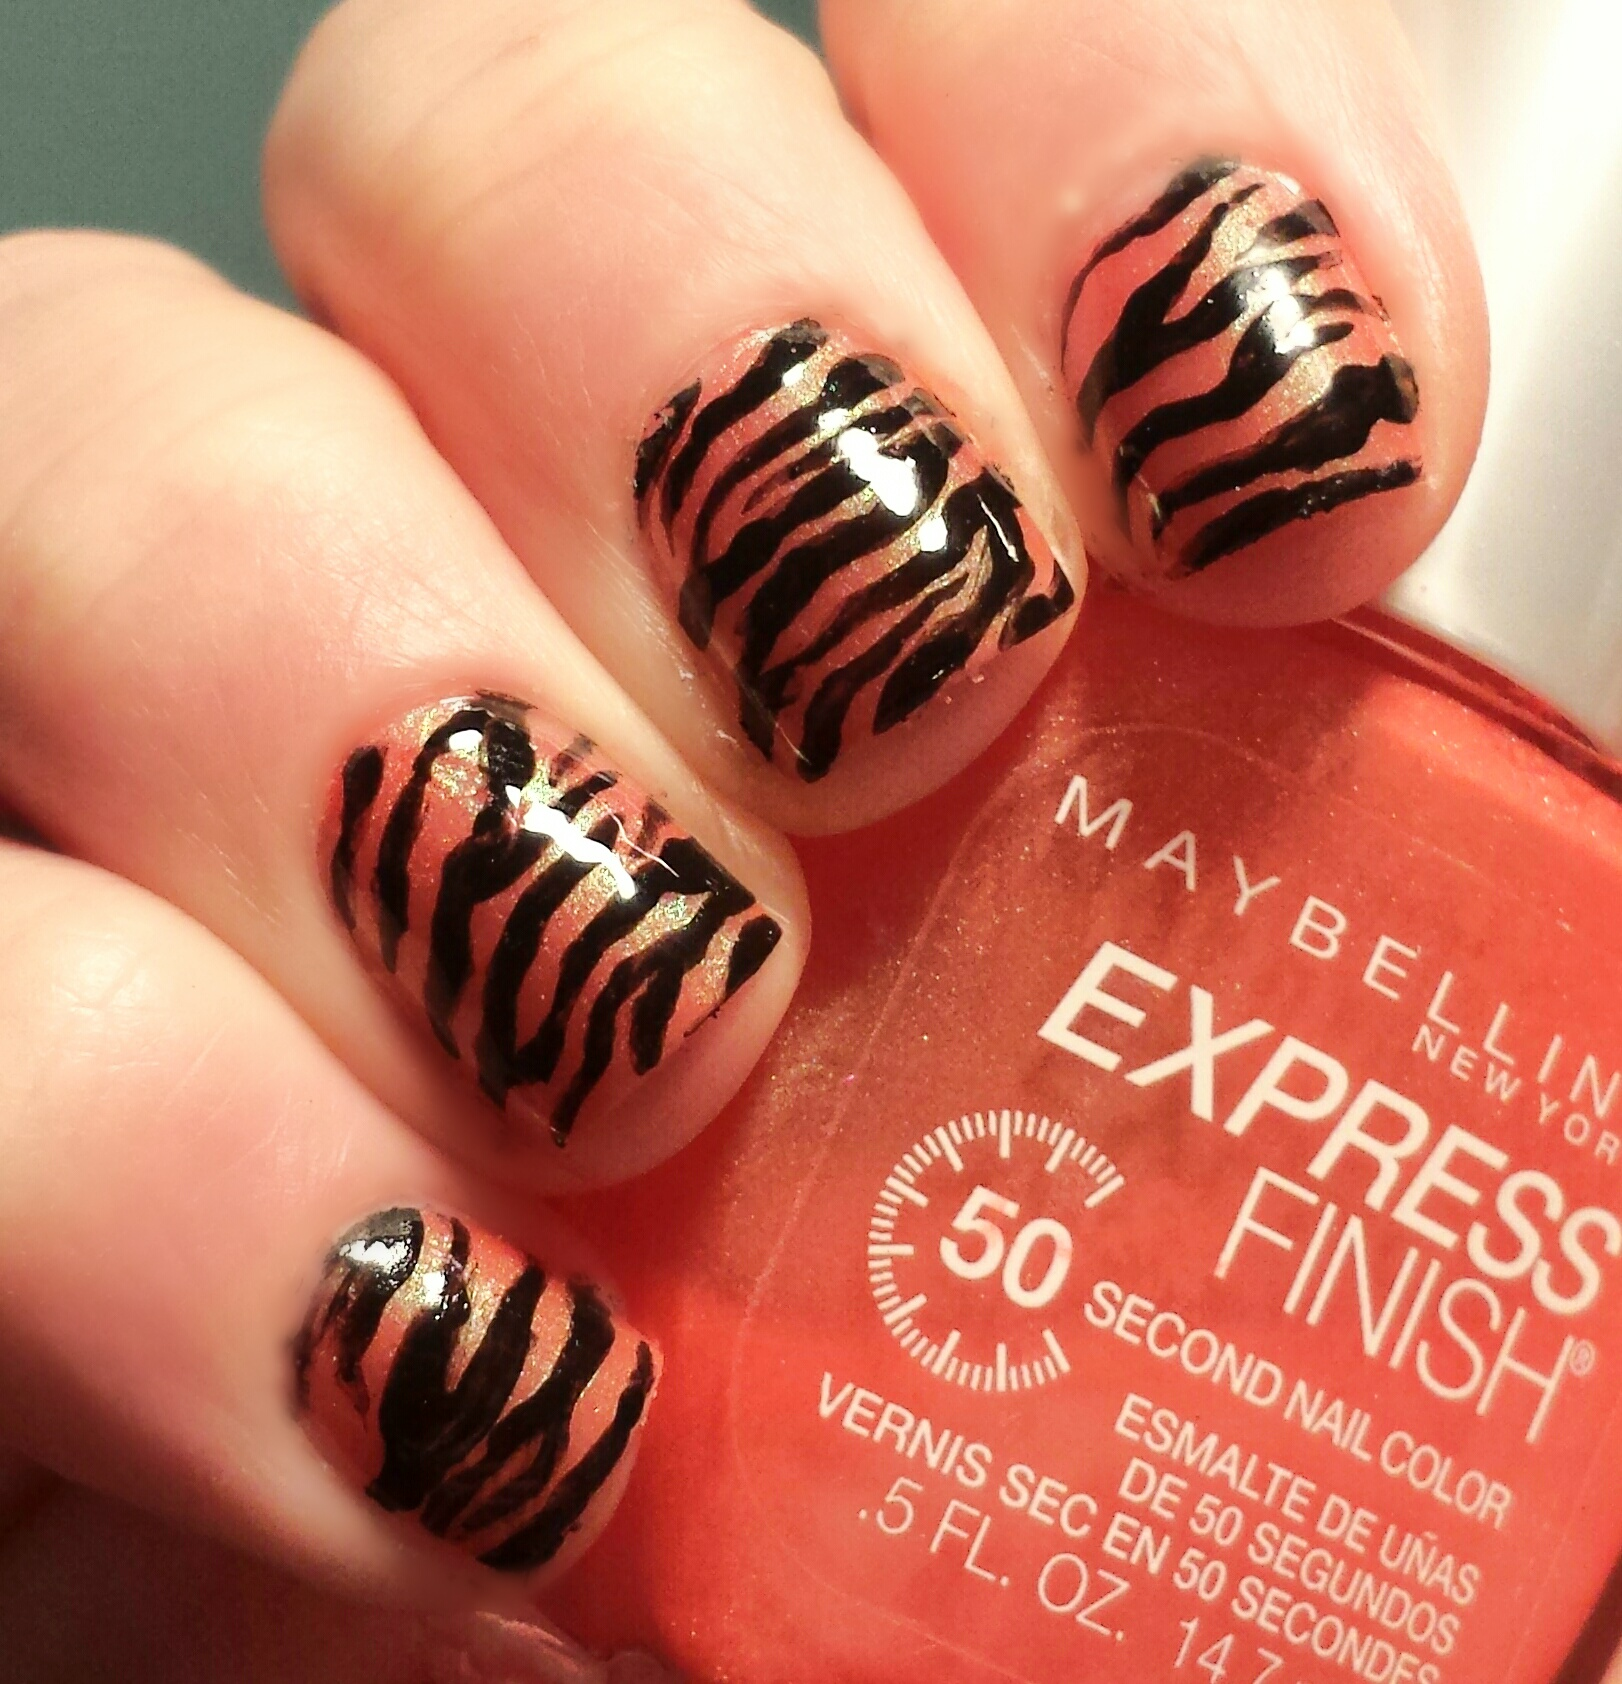 These Are Actually Tiger Print Nails But The Zebra Pattern Works Perfect